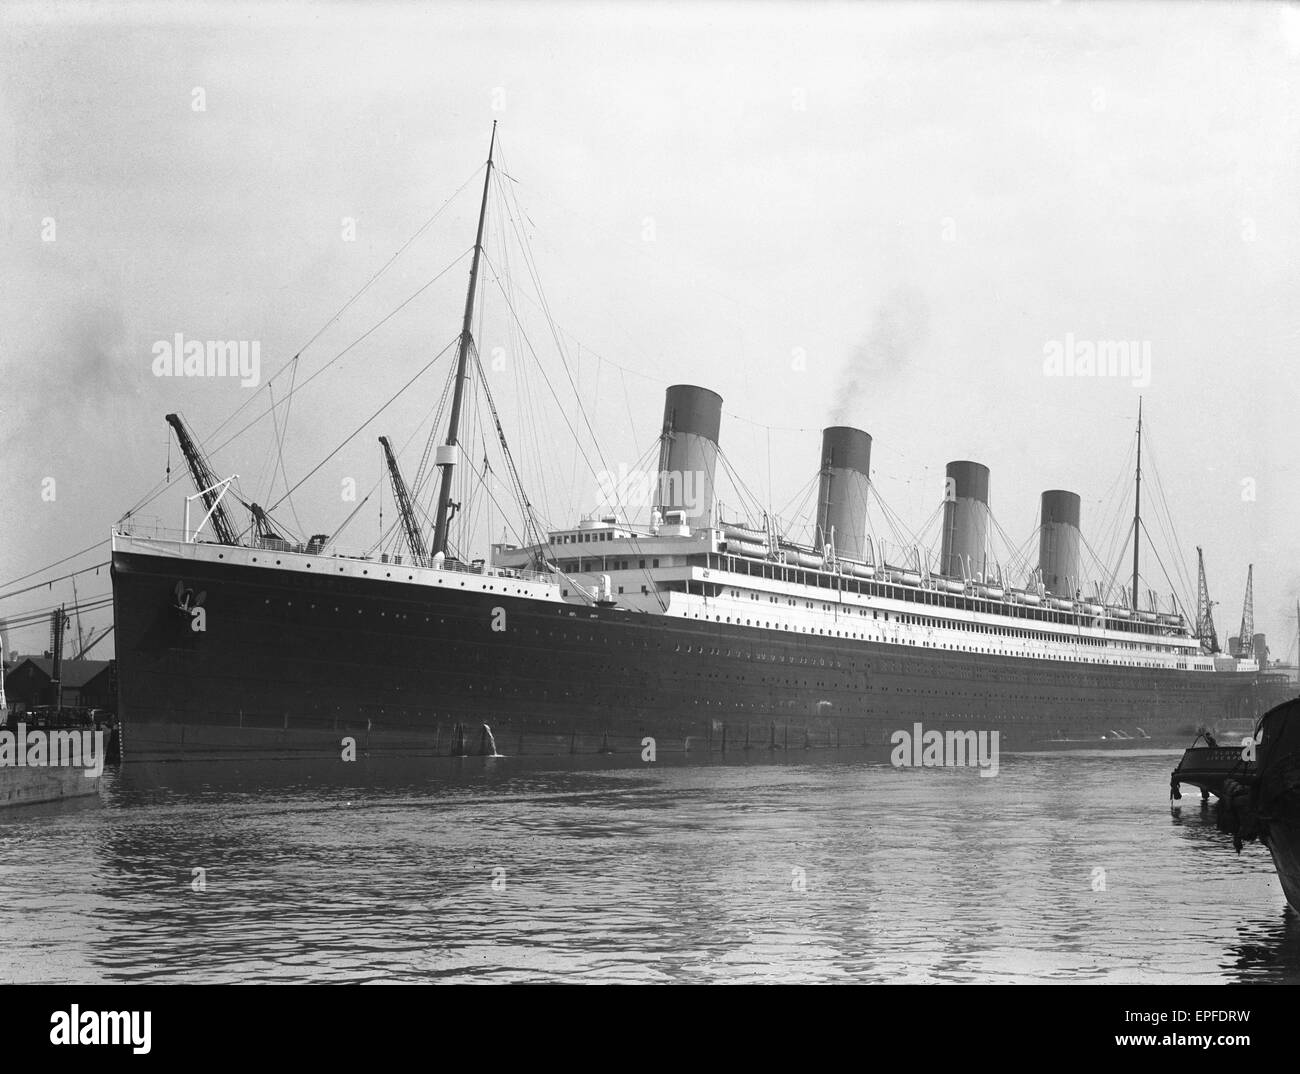 White Star Line liner RMS Olympic, sistership of the ill fated Titanic seen here in Southampton docks for her yearly - Stock Image